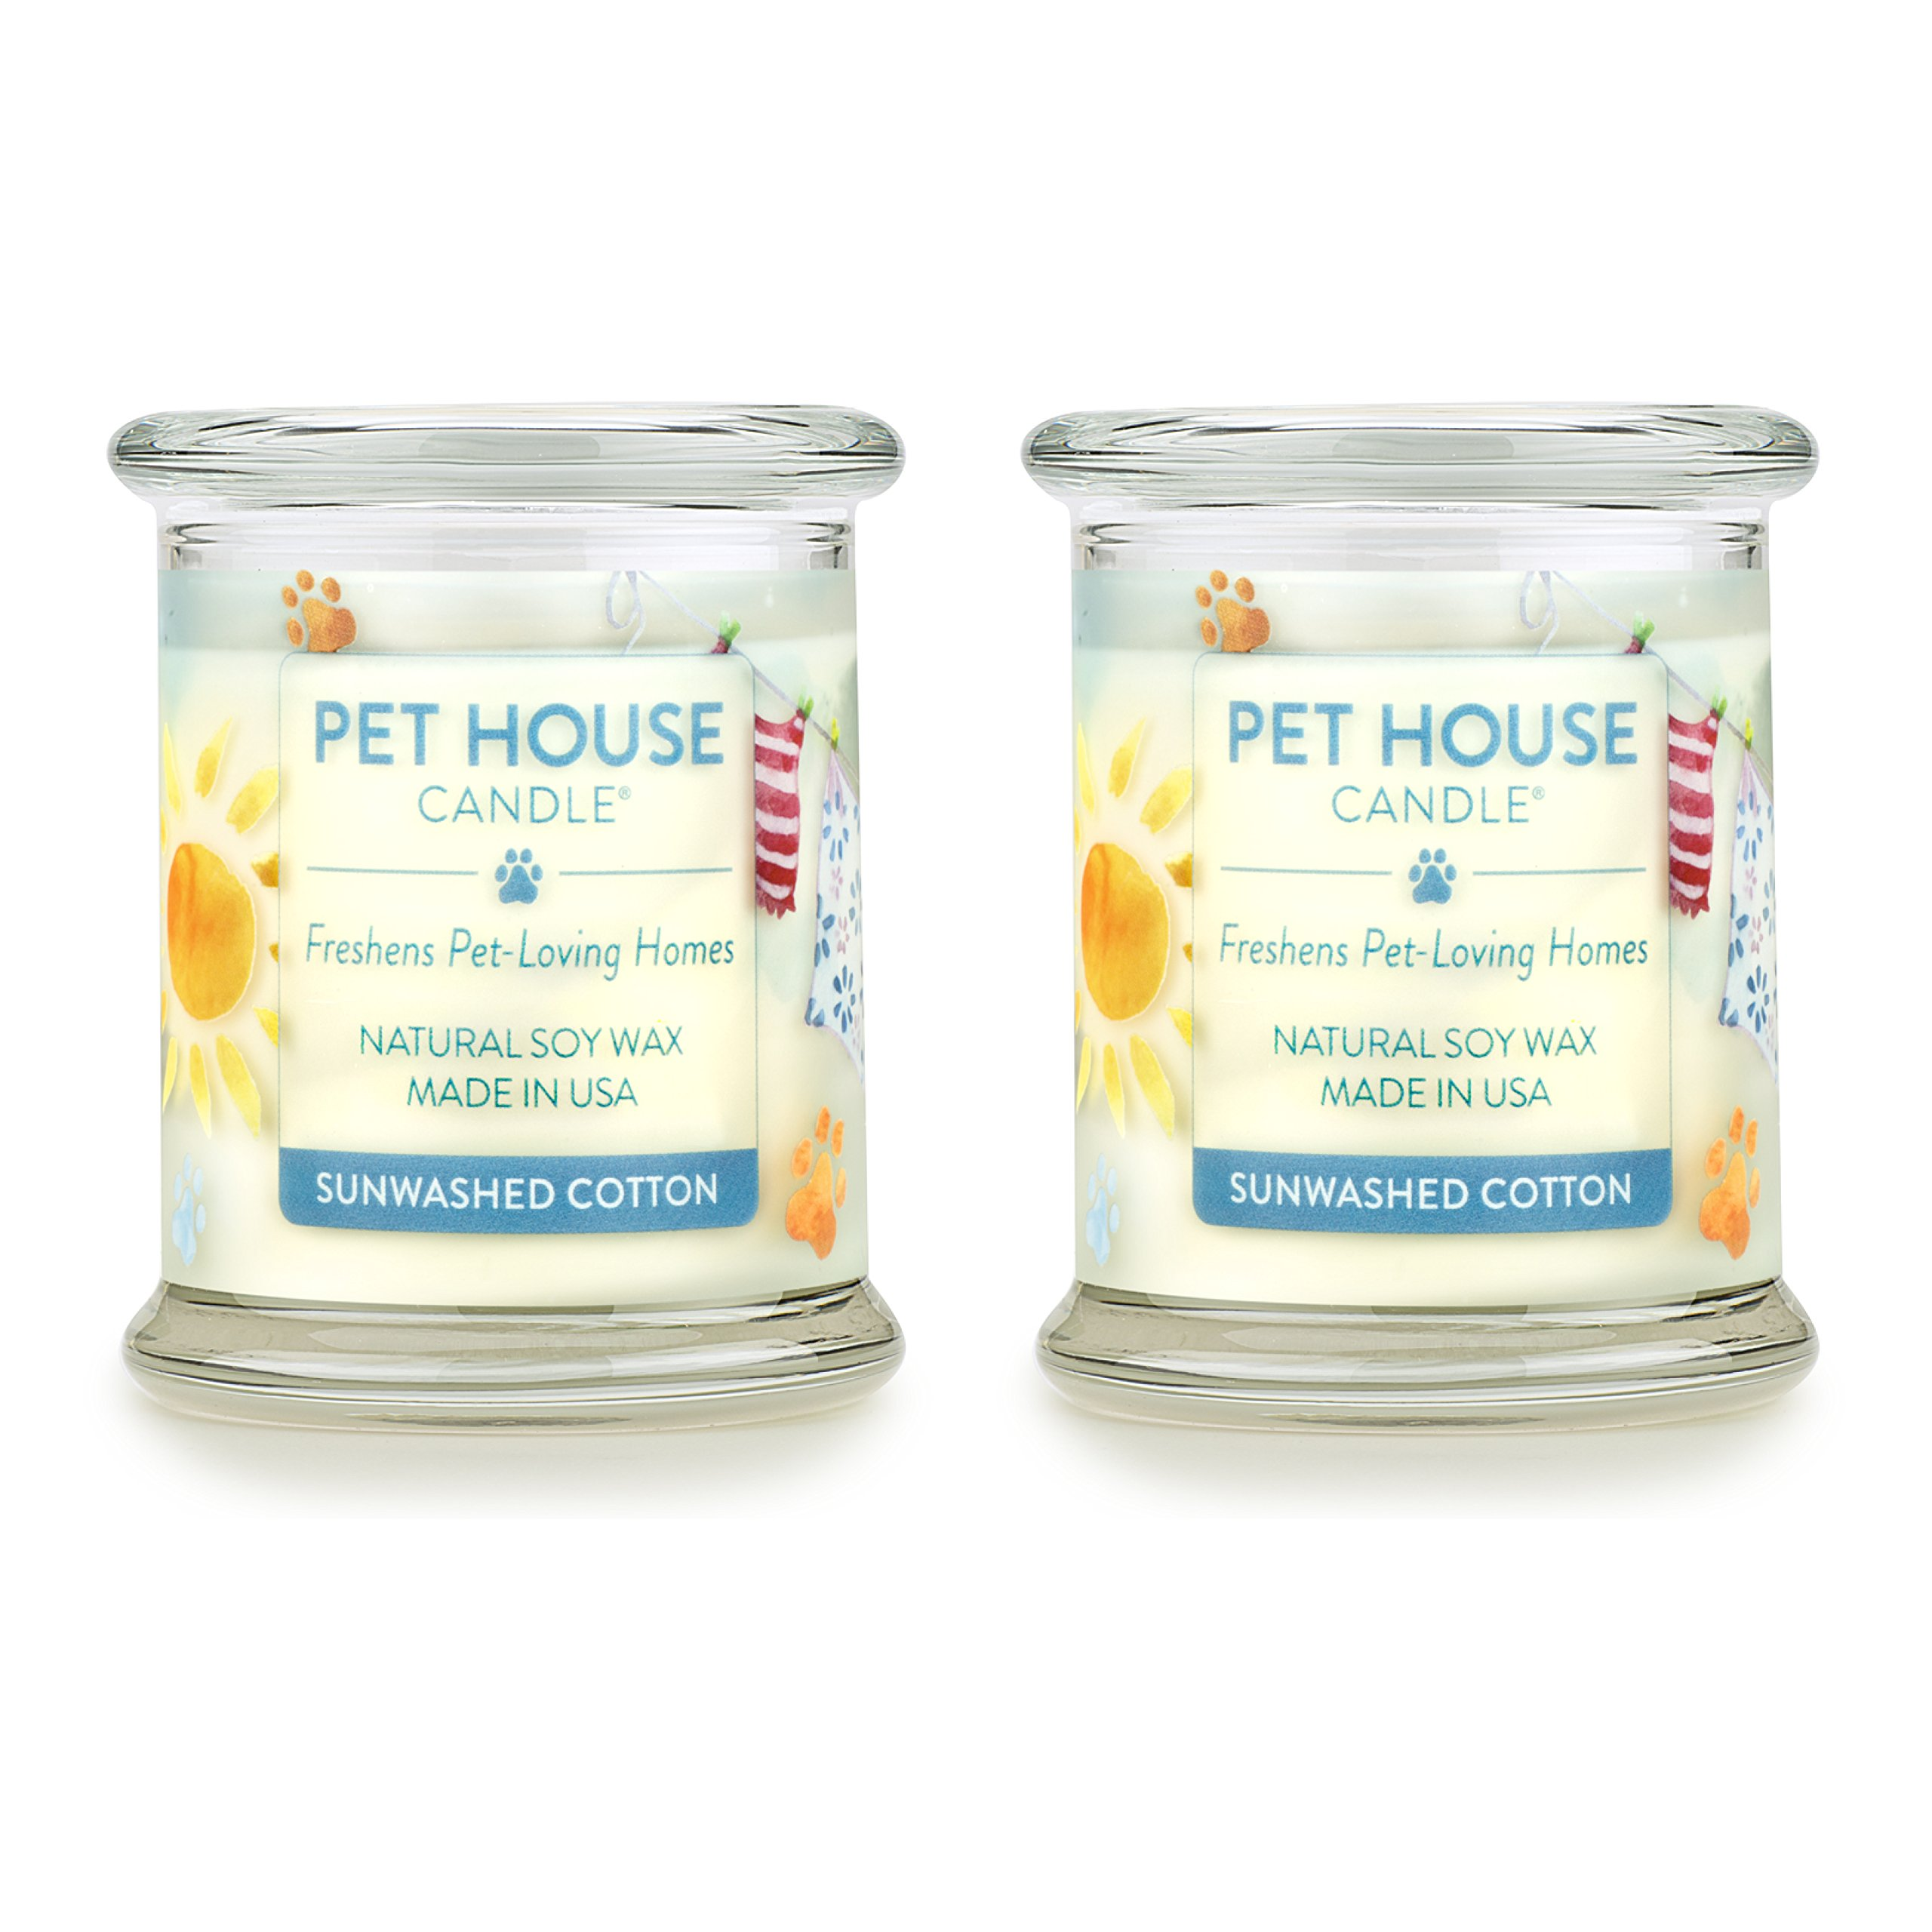 One Fur All - 100% Natural Soy Wax Candle - Pet Odor Eliminator, Up to 60 Hours Burn Time, Non-Toxic, Eco-Friendly Reusable Glass Jar Scented Candles - Sunwashed Cotton - Pack of 2